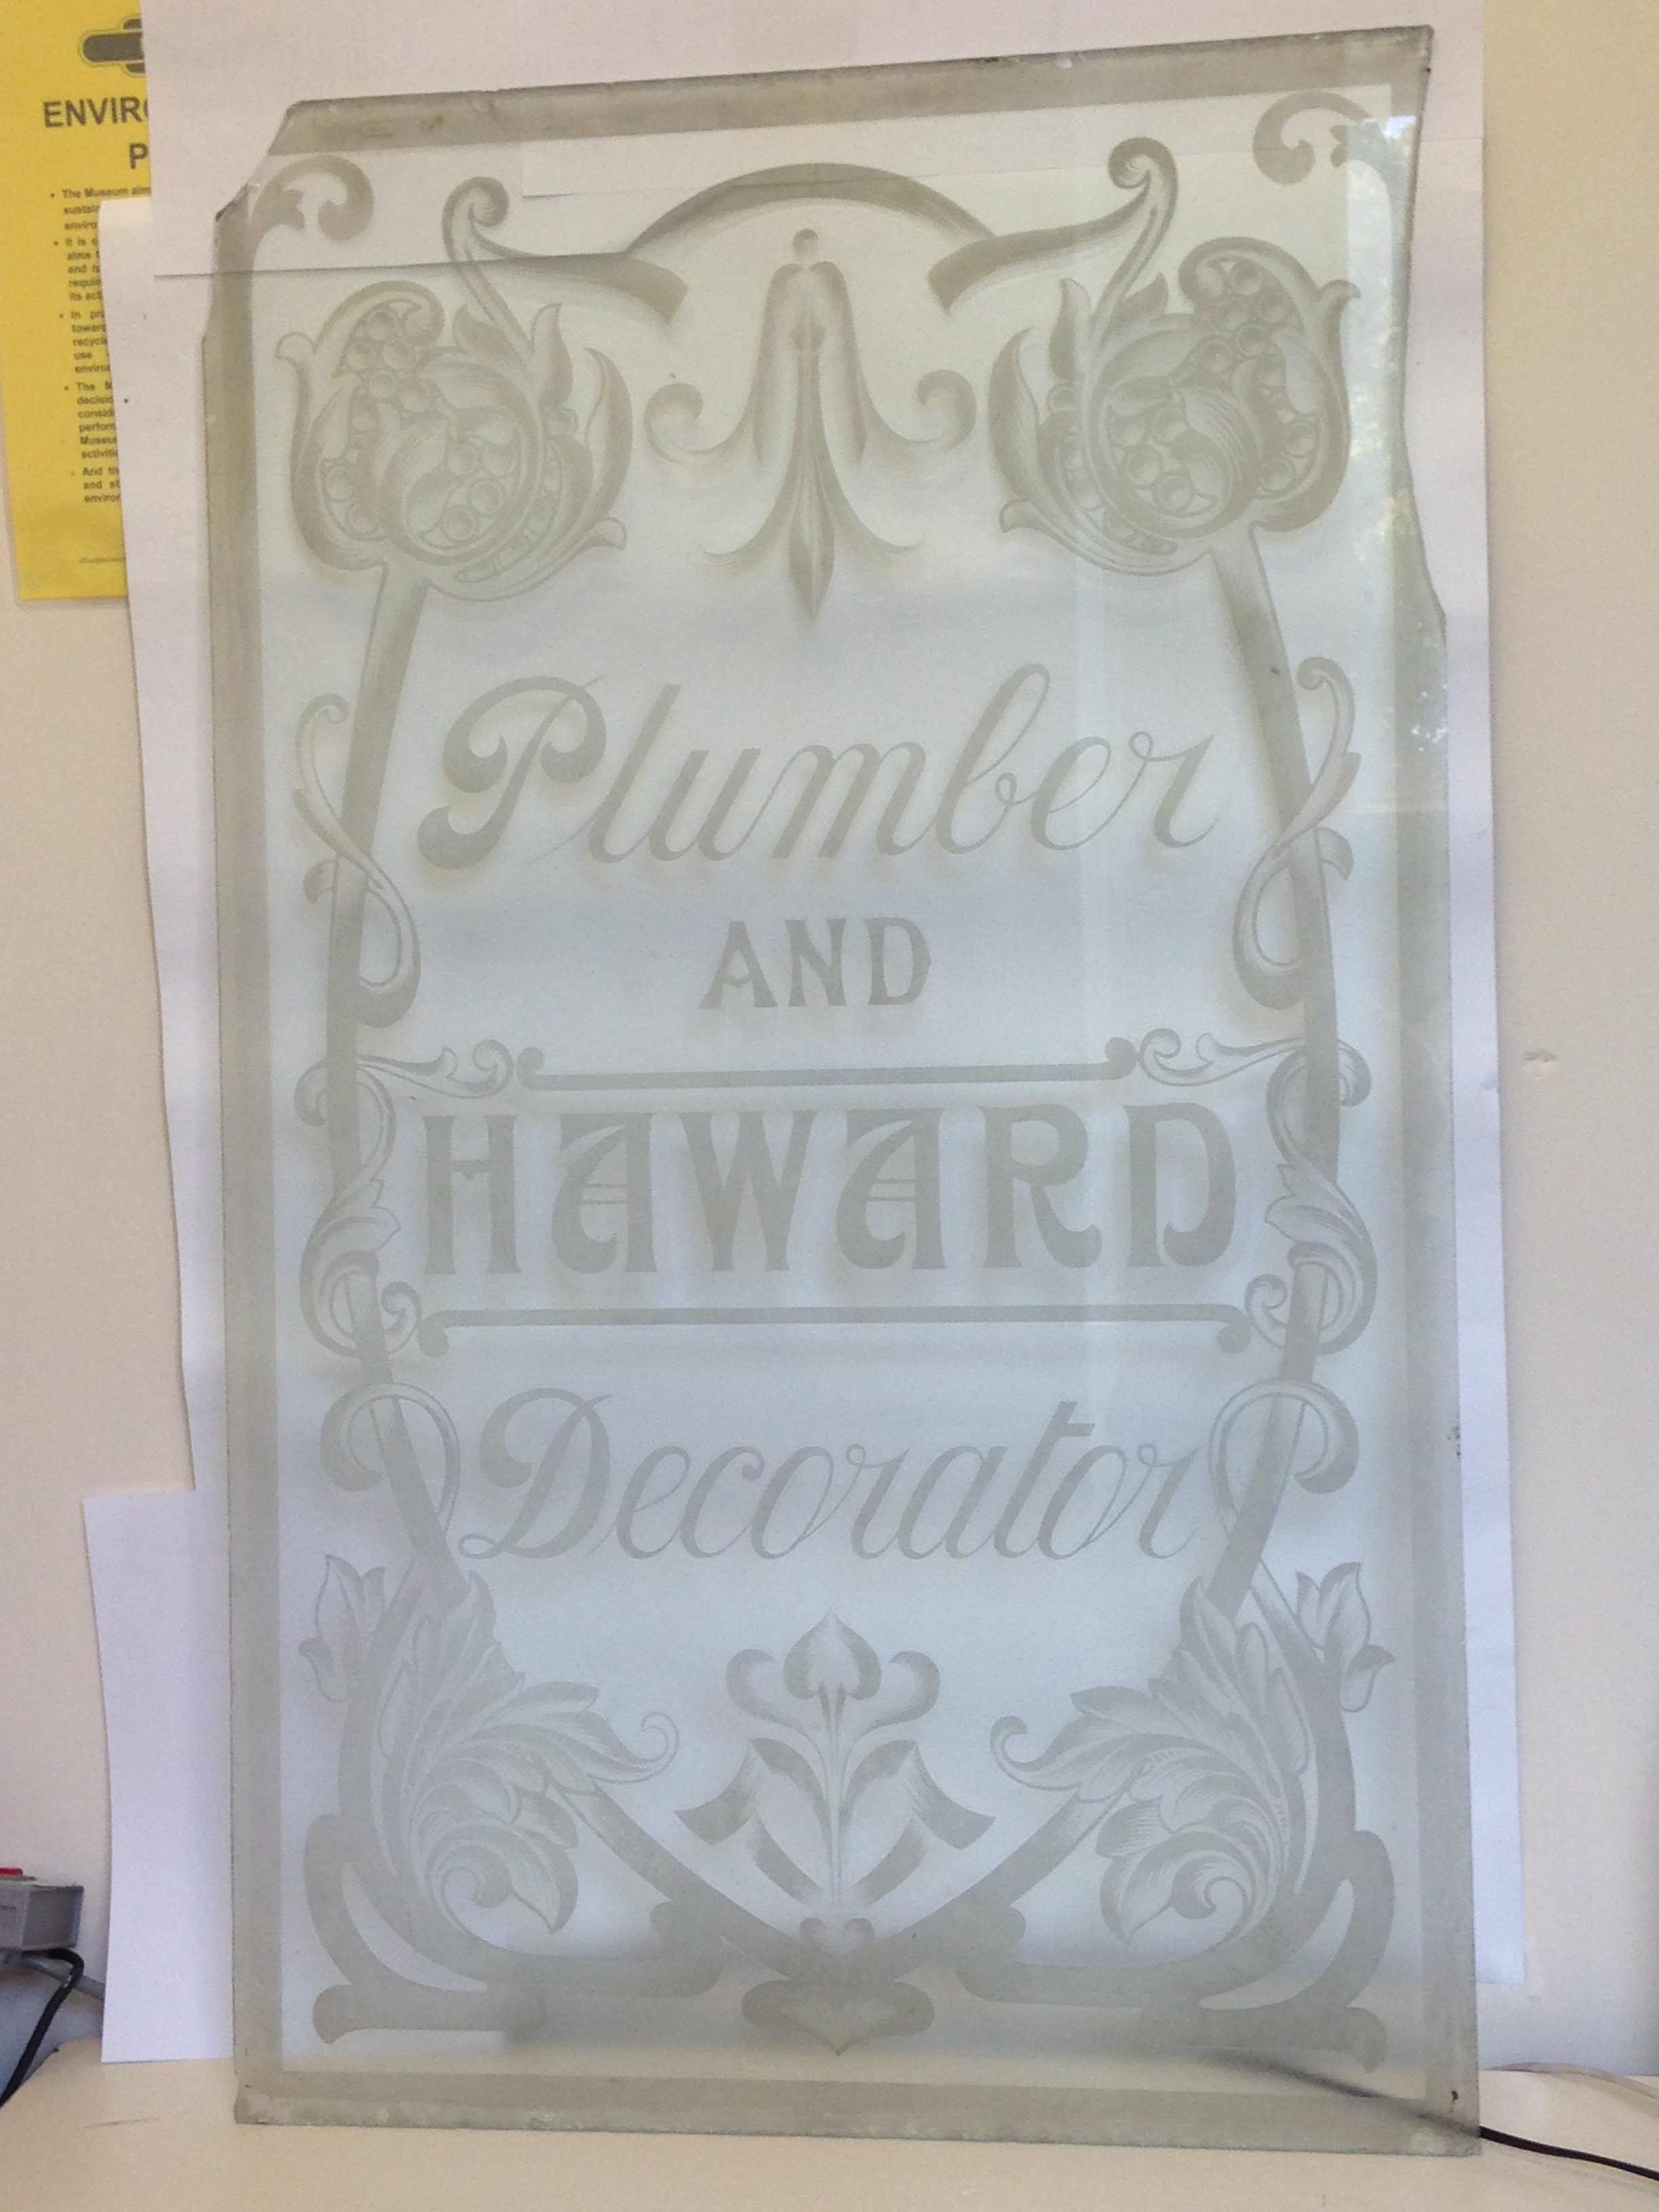 Haward Plumbers and Decorators Door Glass